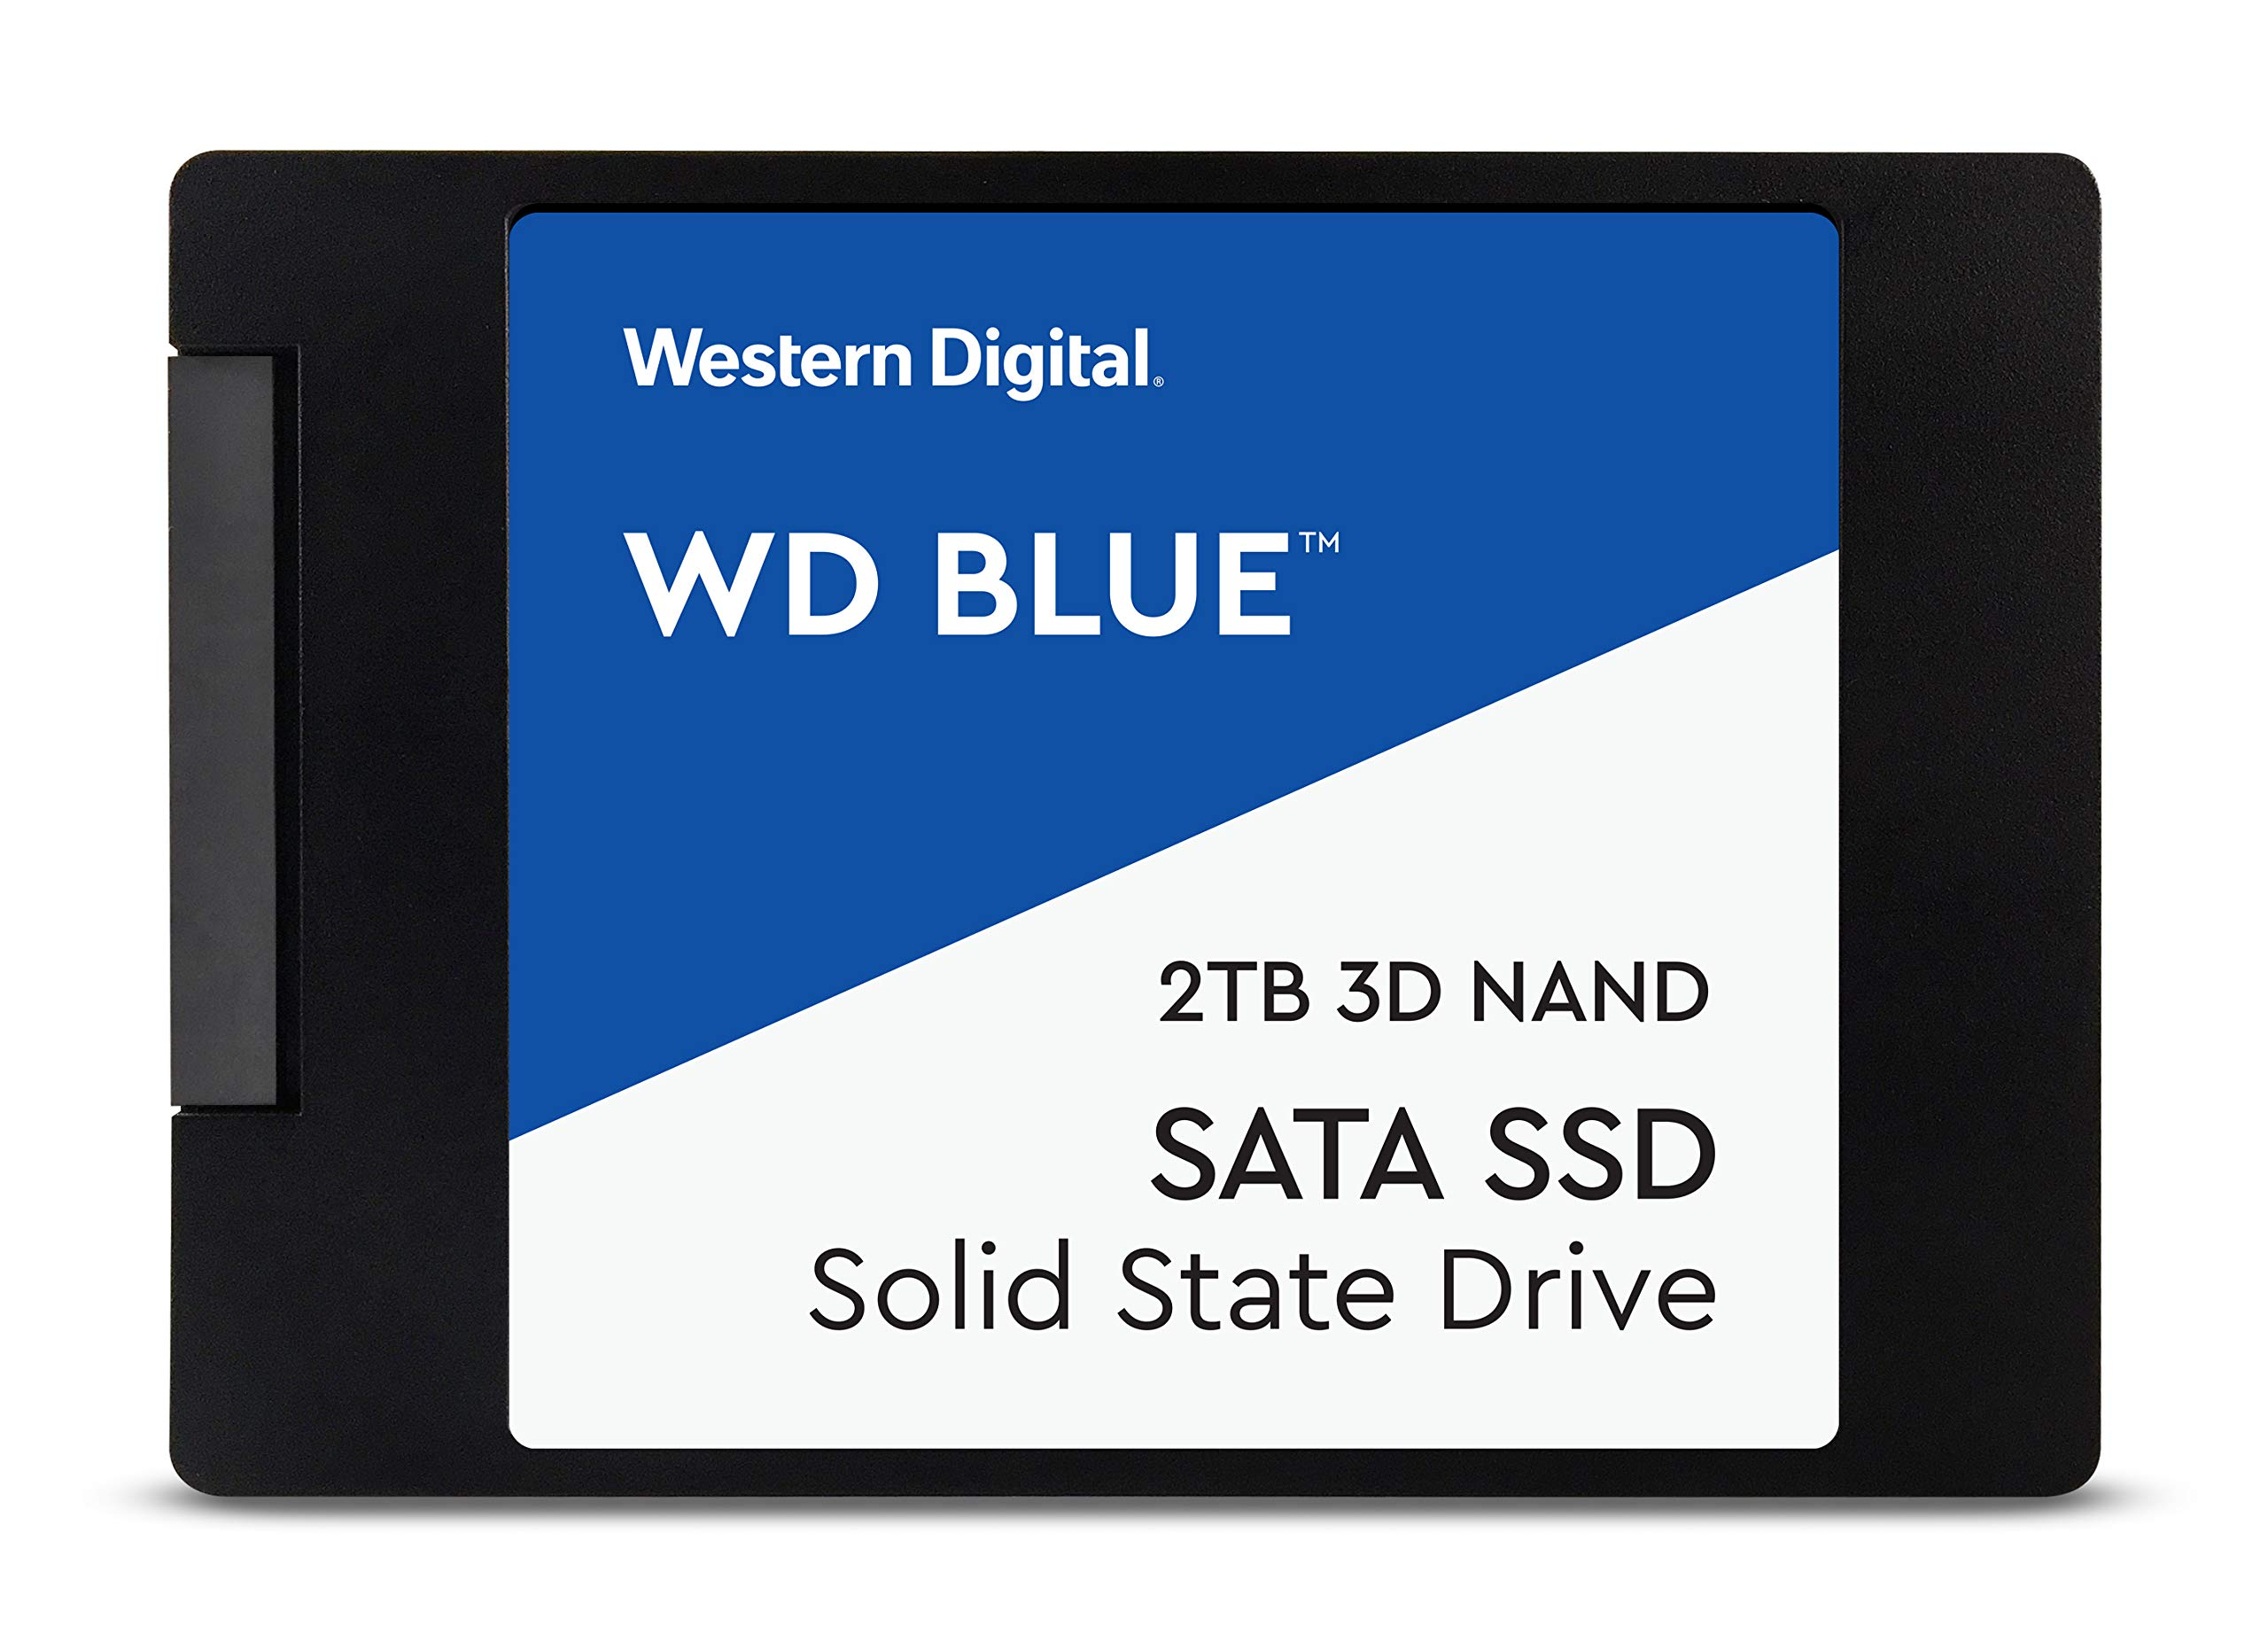 WD Blue 3D NAND 500GB PC SSD - SATA III 6 Gb/s, 2.5''/7mm - WDS500G2B0A